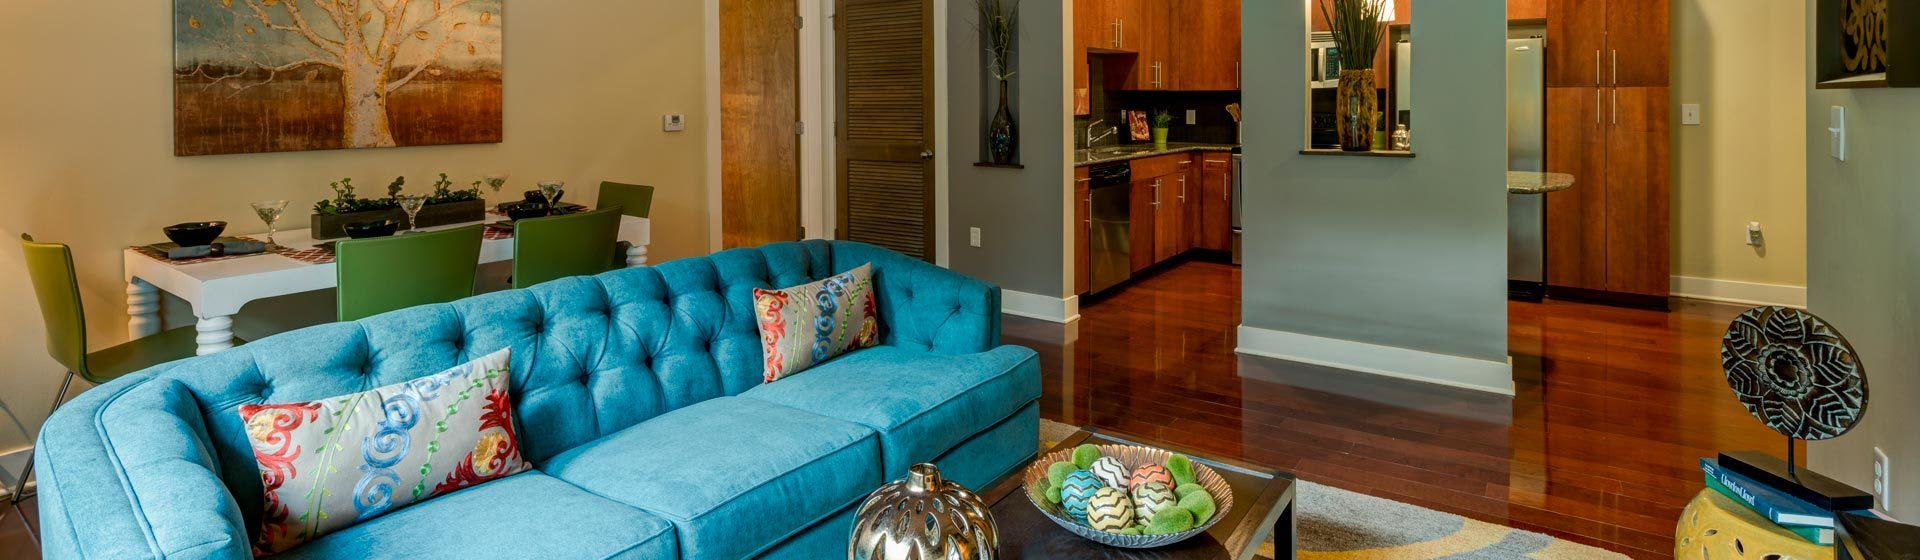 Luxury 1 2 bedroom apartments in atlanta ga eon at - 1 bedroom apartments in atlanta under 400 ...